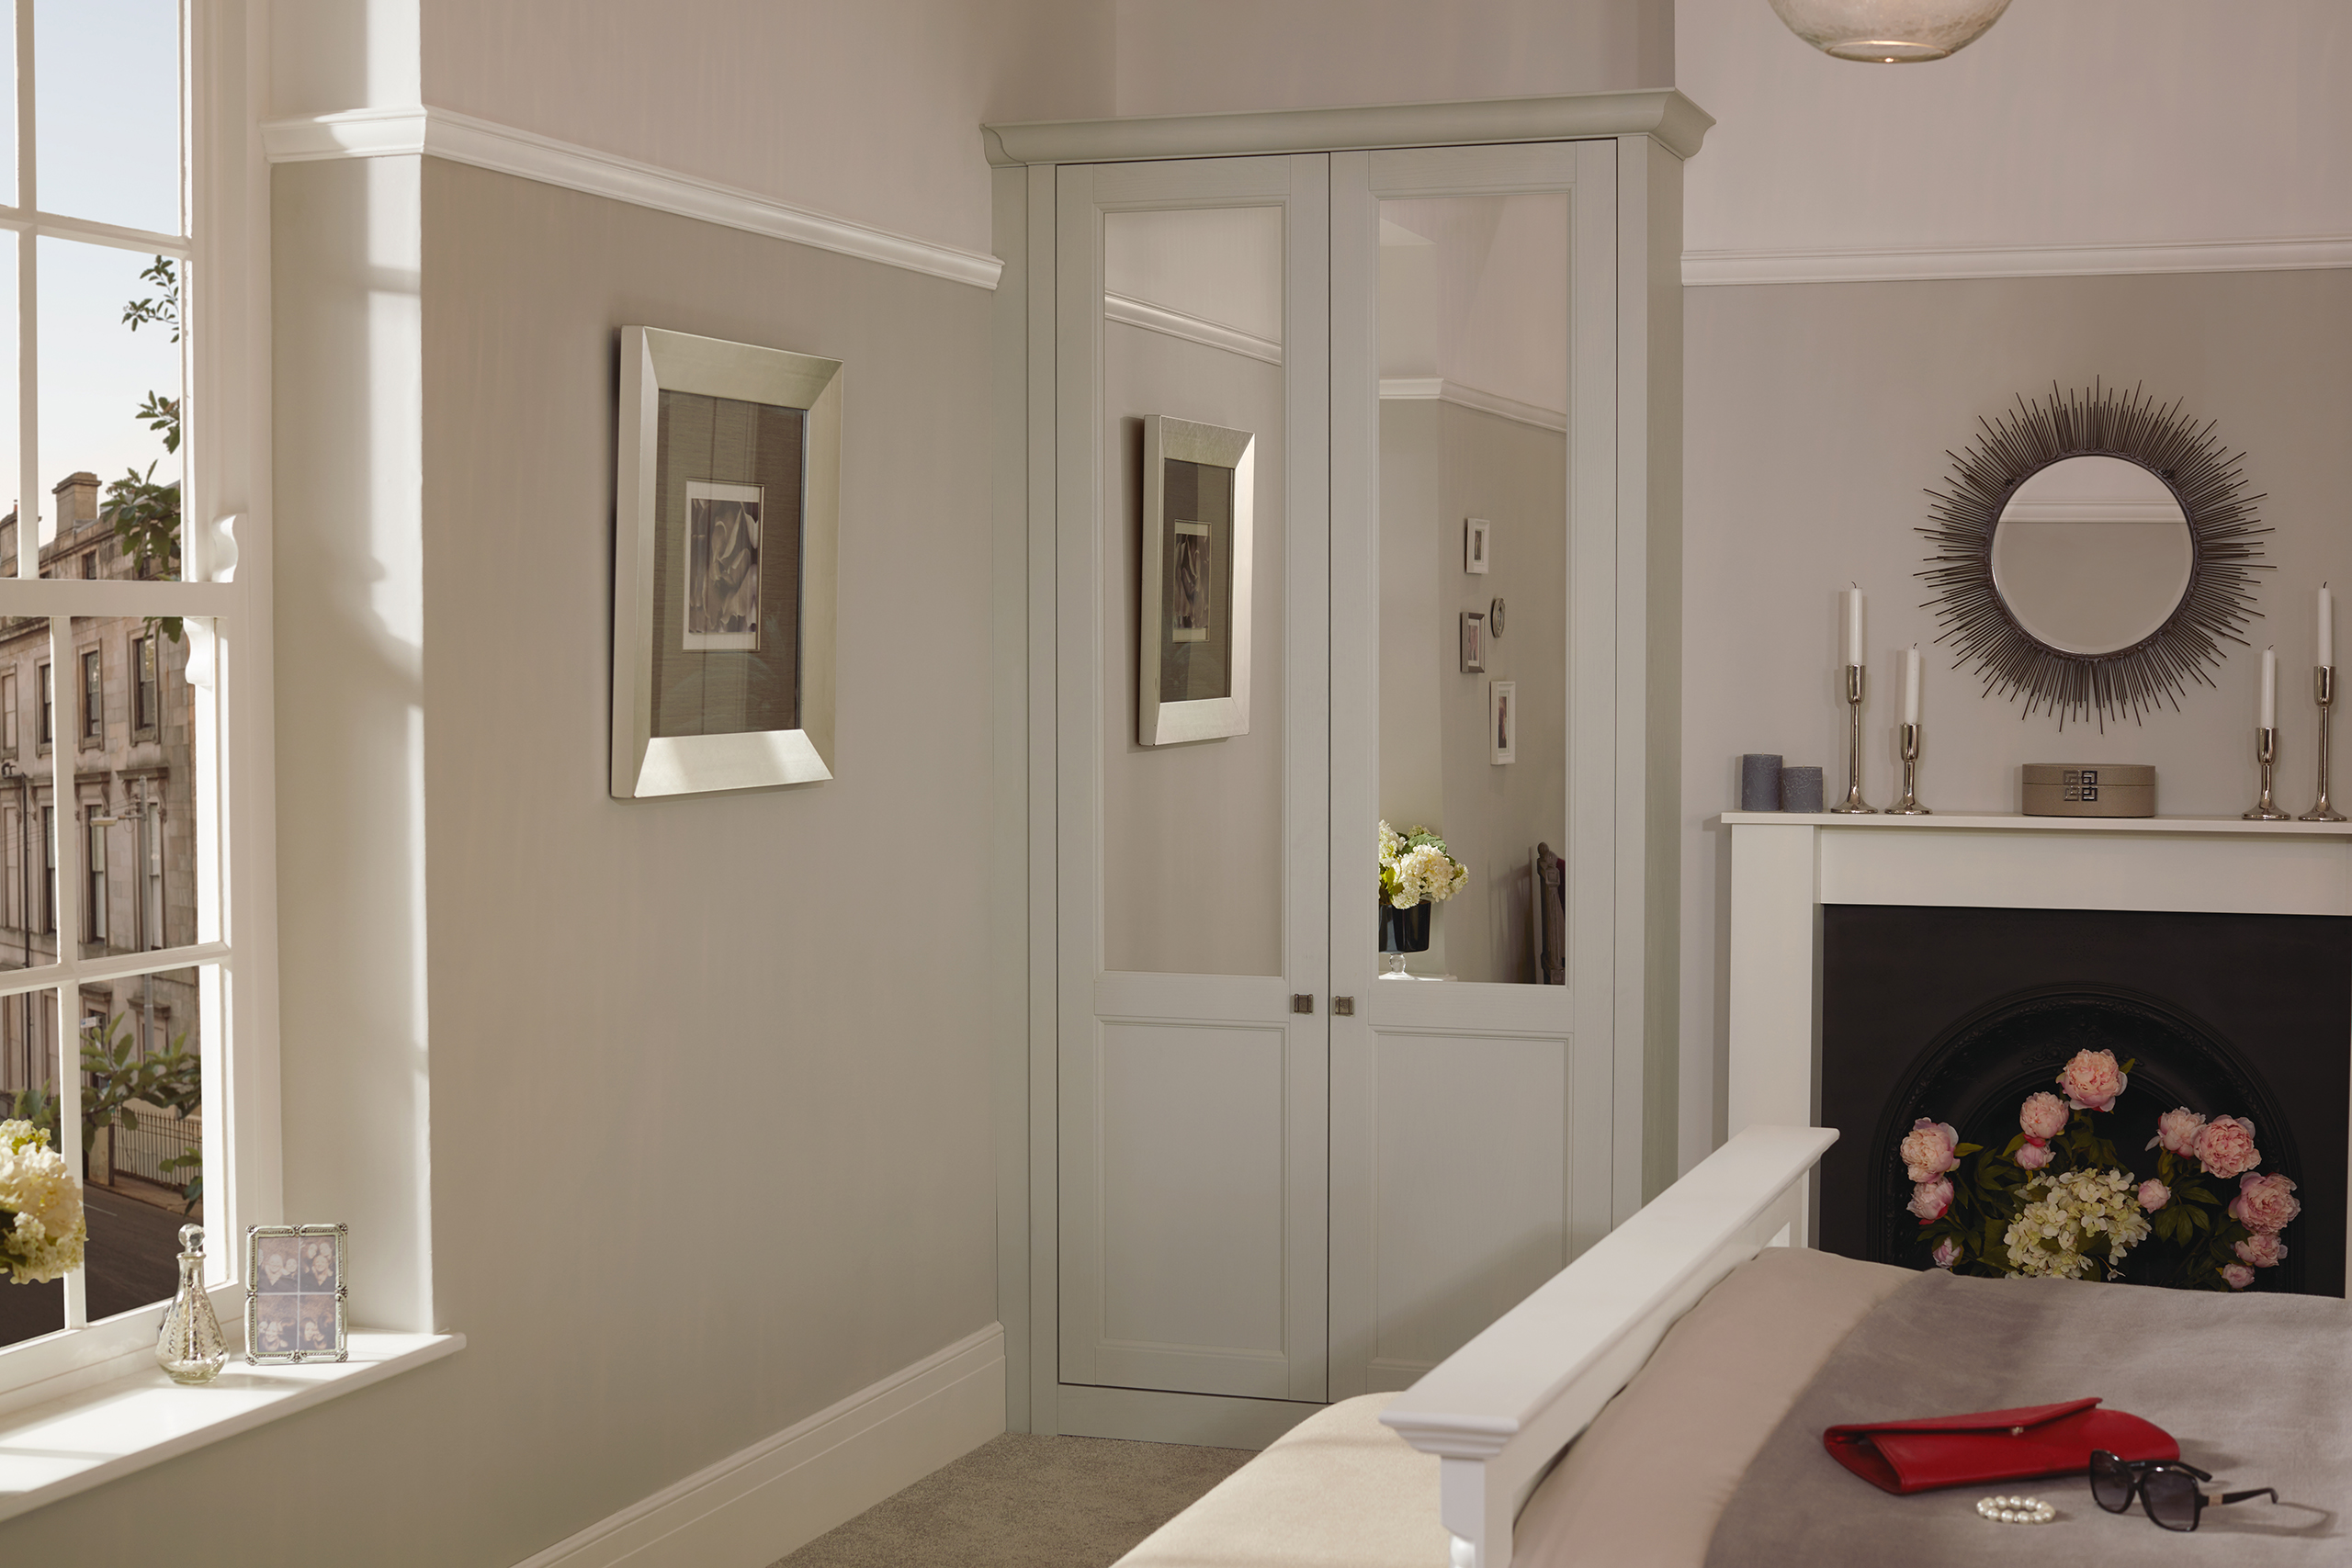 Kindred fitted bedroom furniture from Fine Finish Furniture